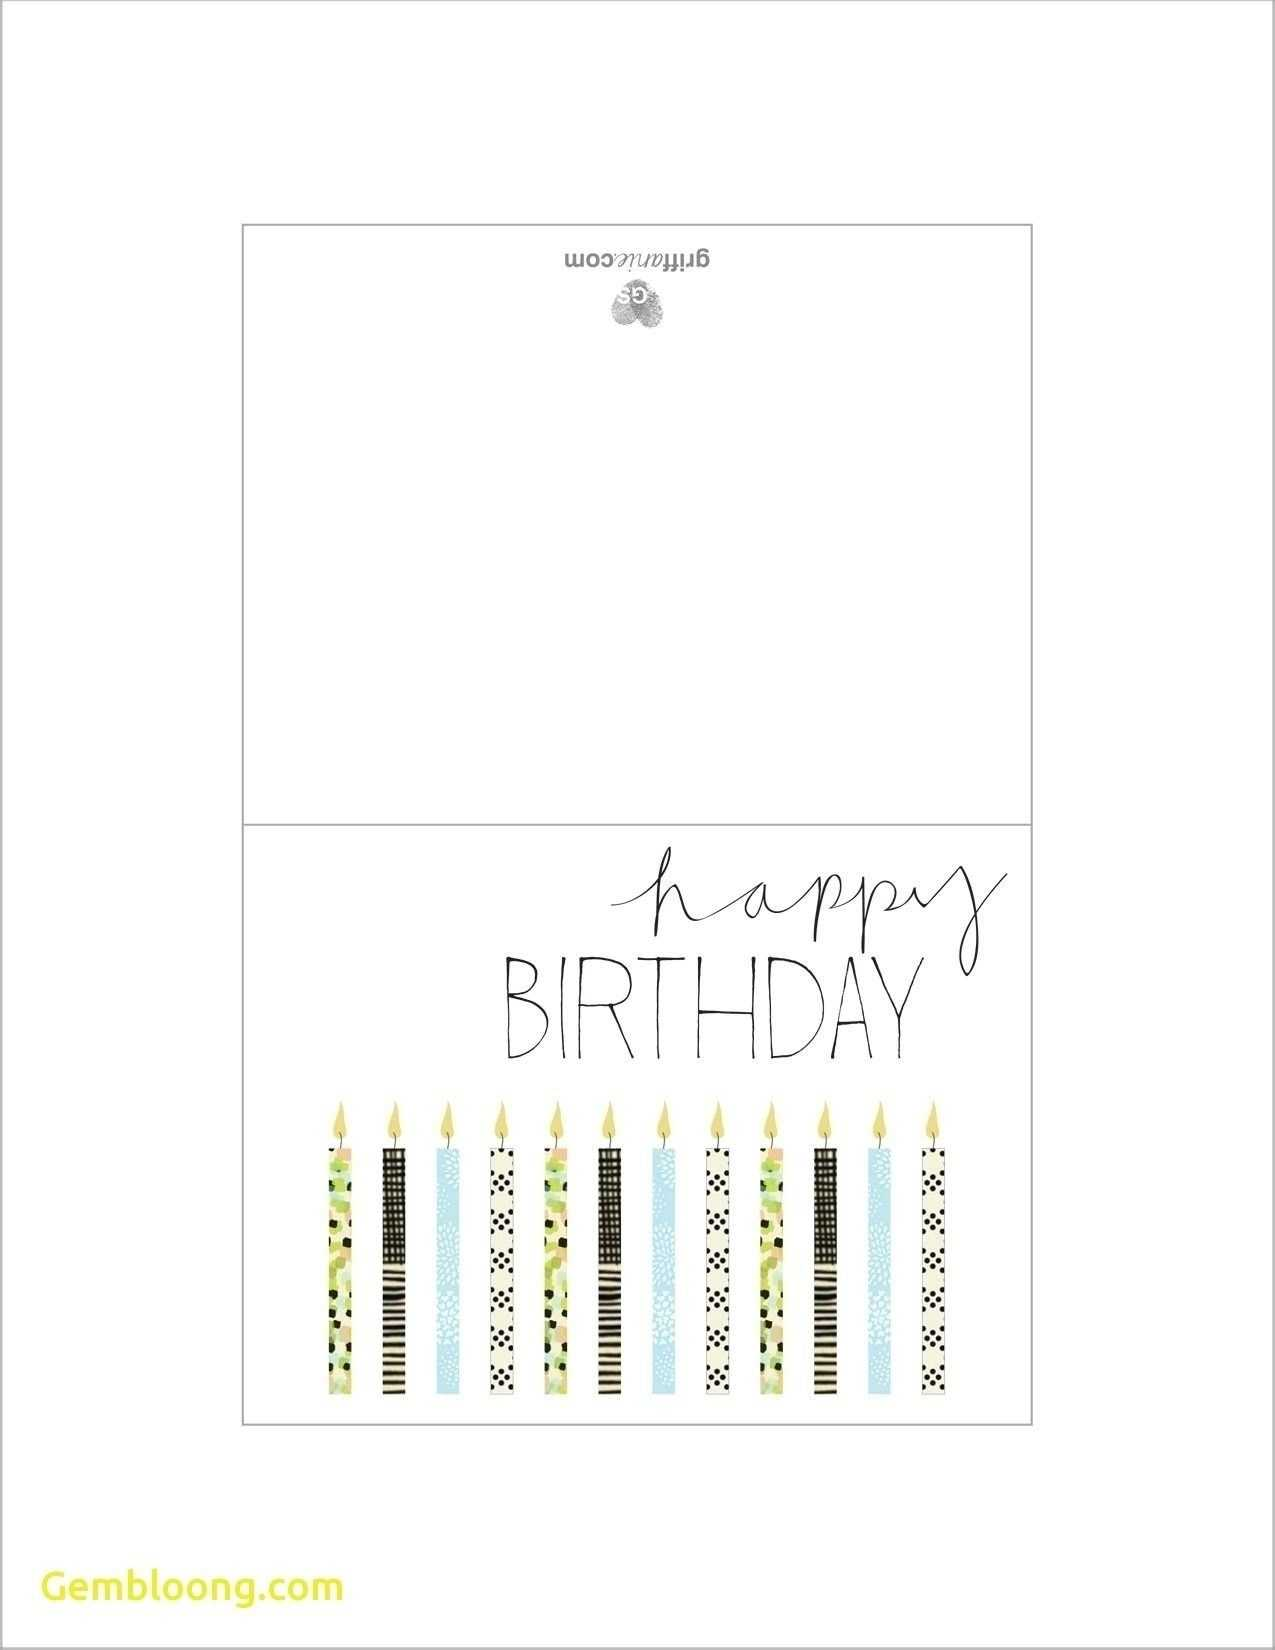 012 Printable Birthday Card Template Ideas Cards Foldable Intended For Foldable Birthday Card Template